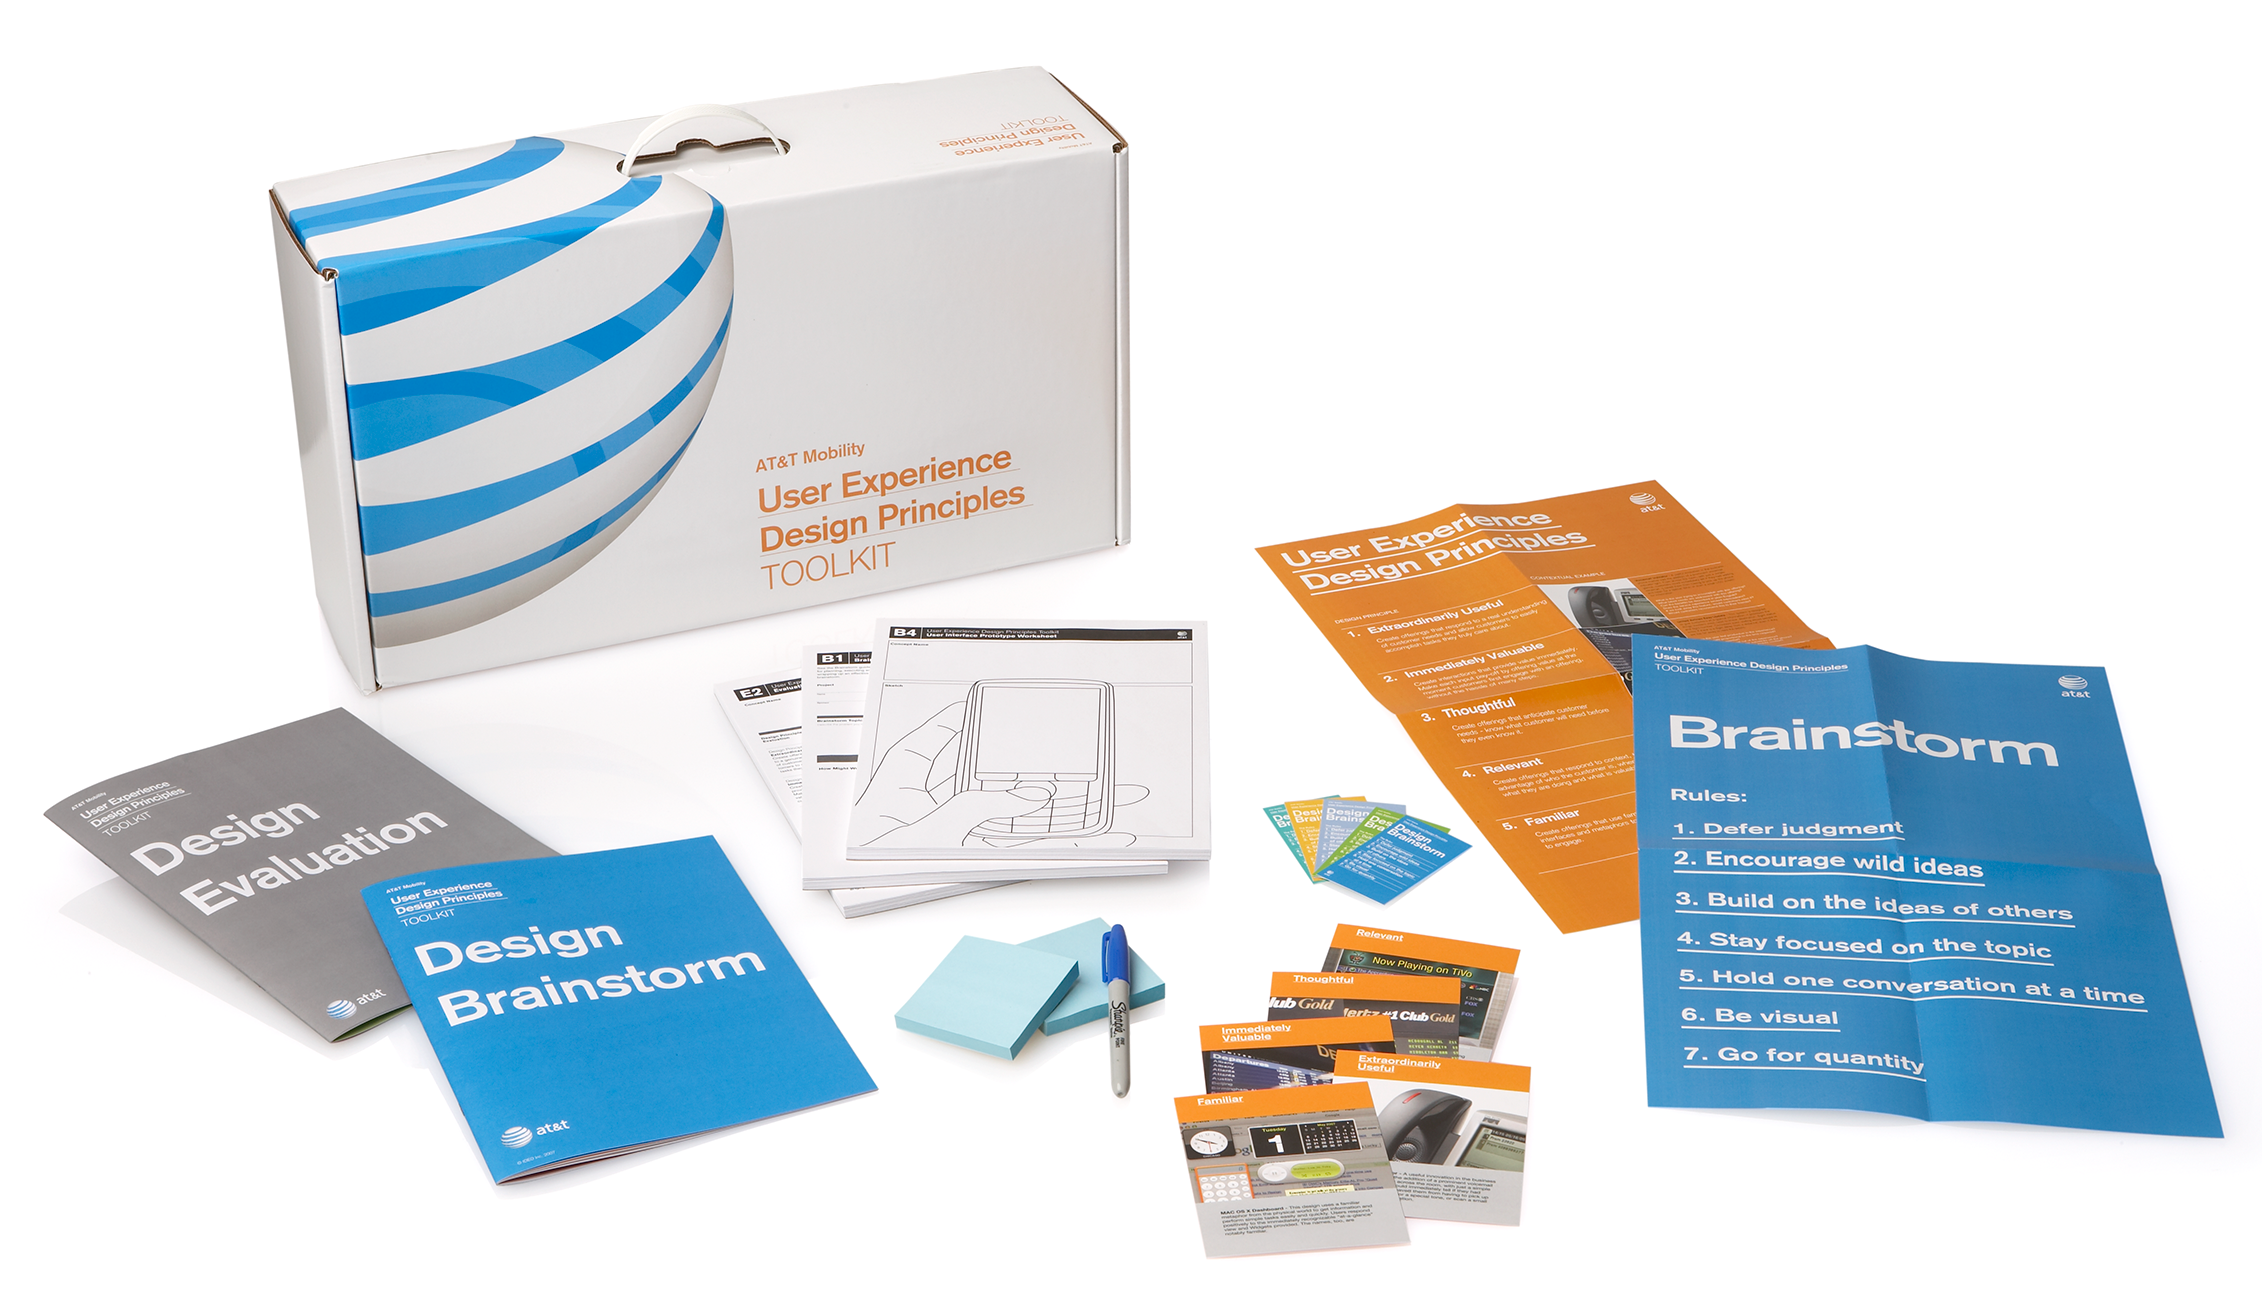 These worksheets, guidelines and posters help AT&T run brainstorms and evaluate brainstorm ideas.